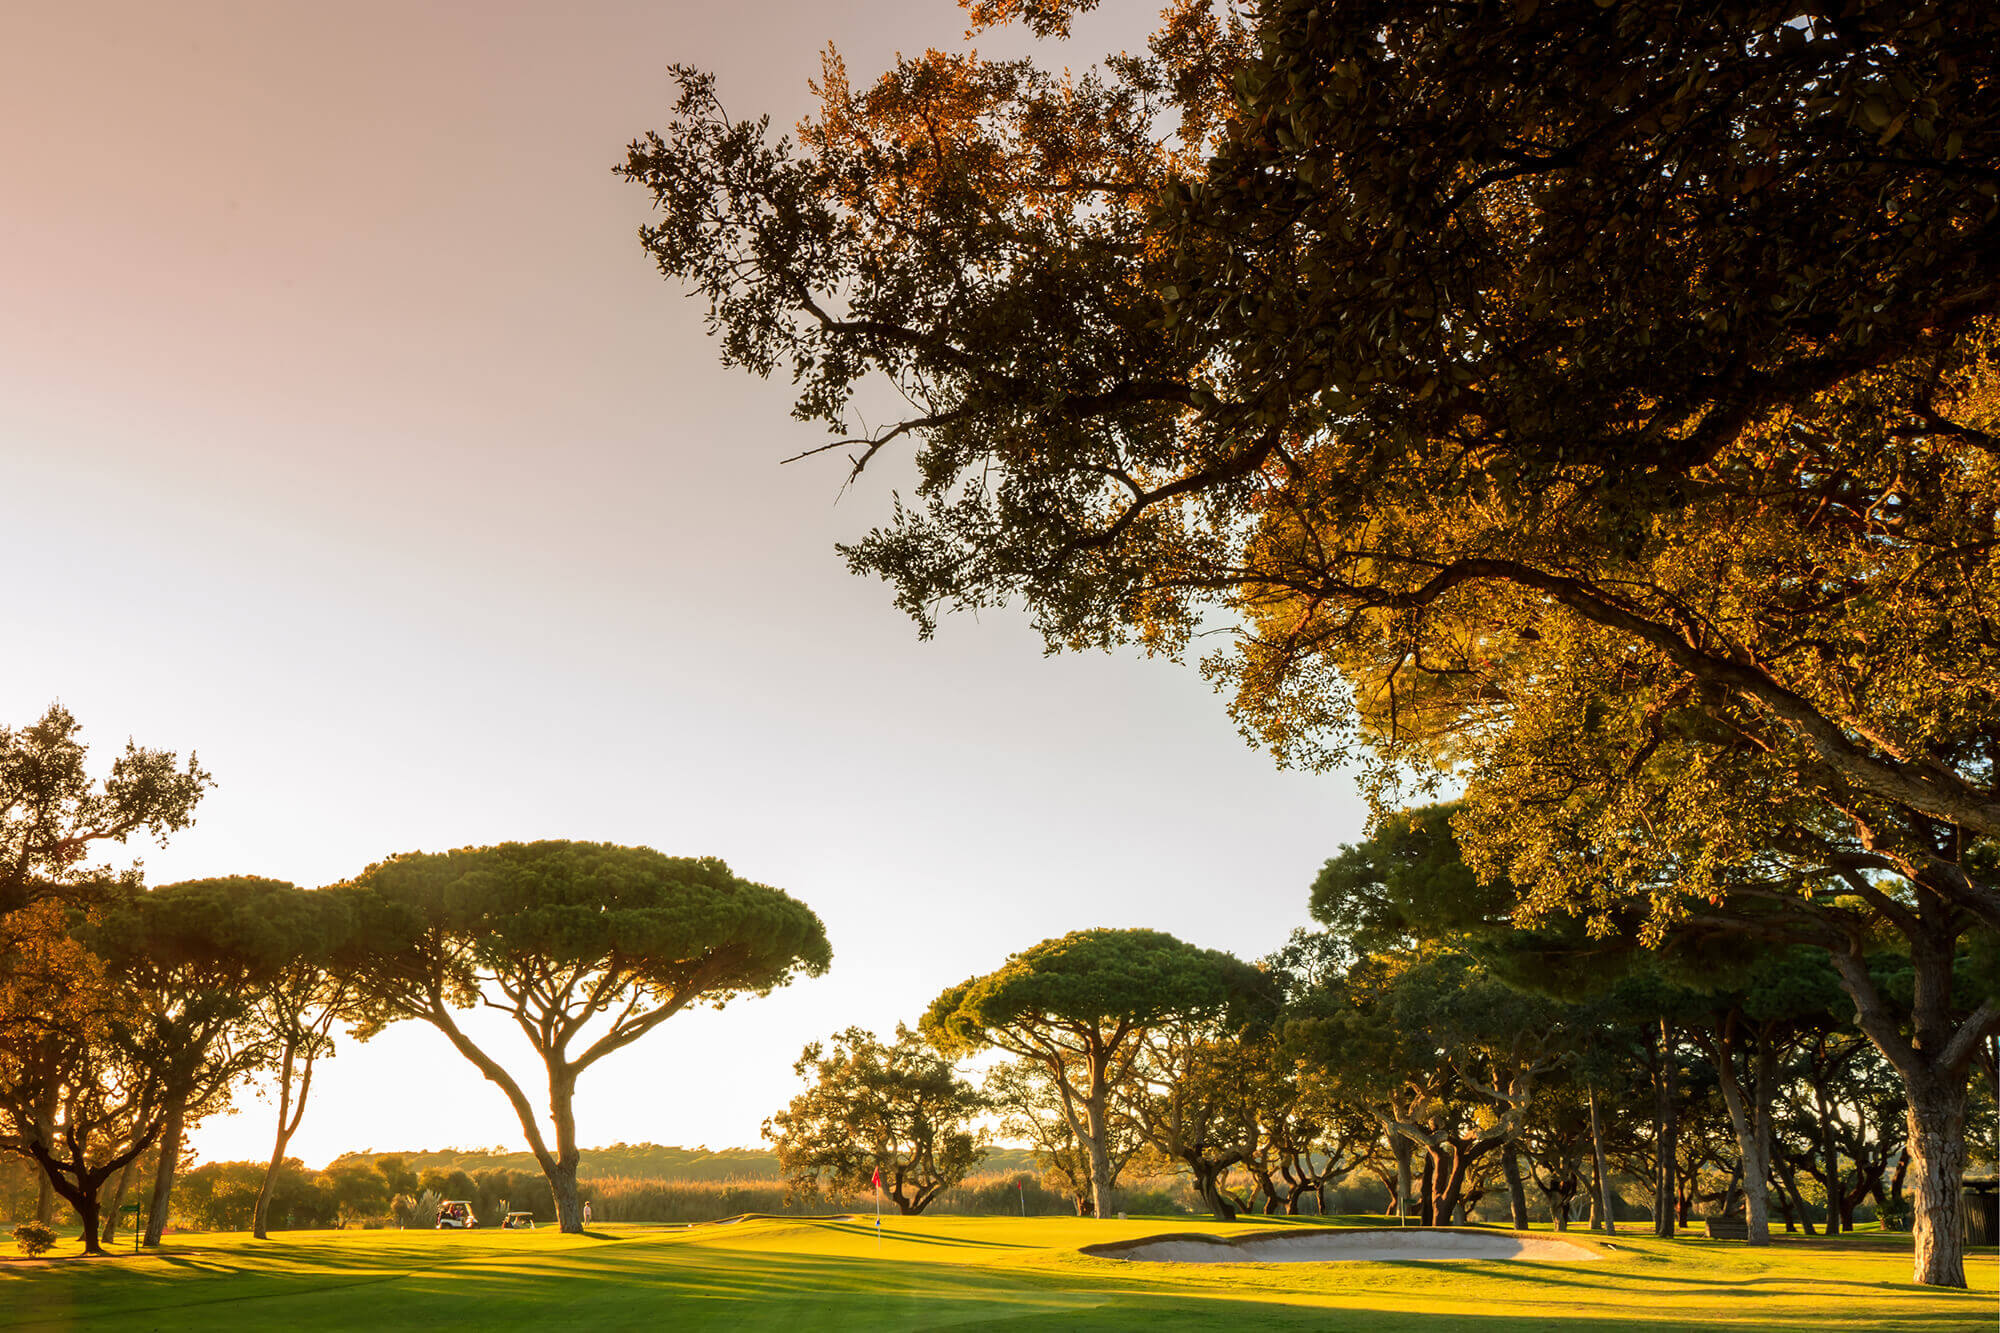 Is Vale do Lobo expensive?